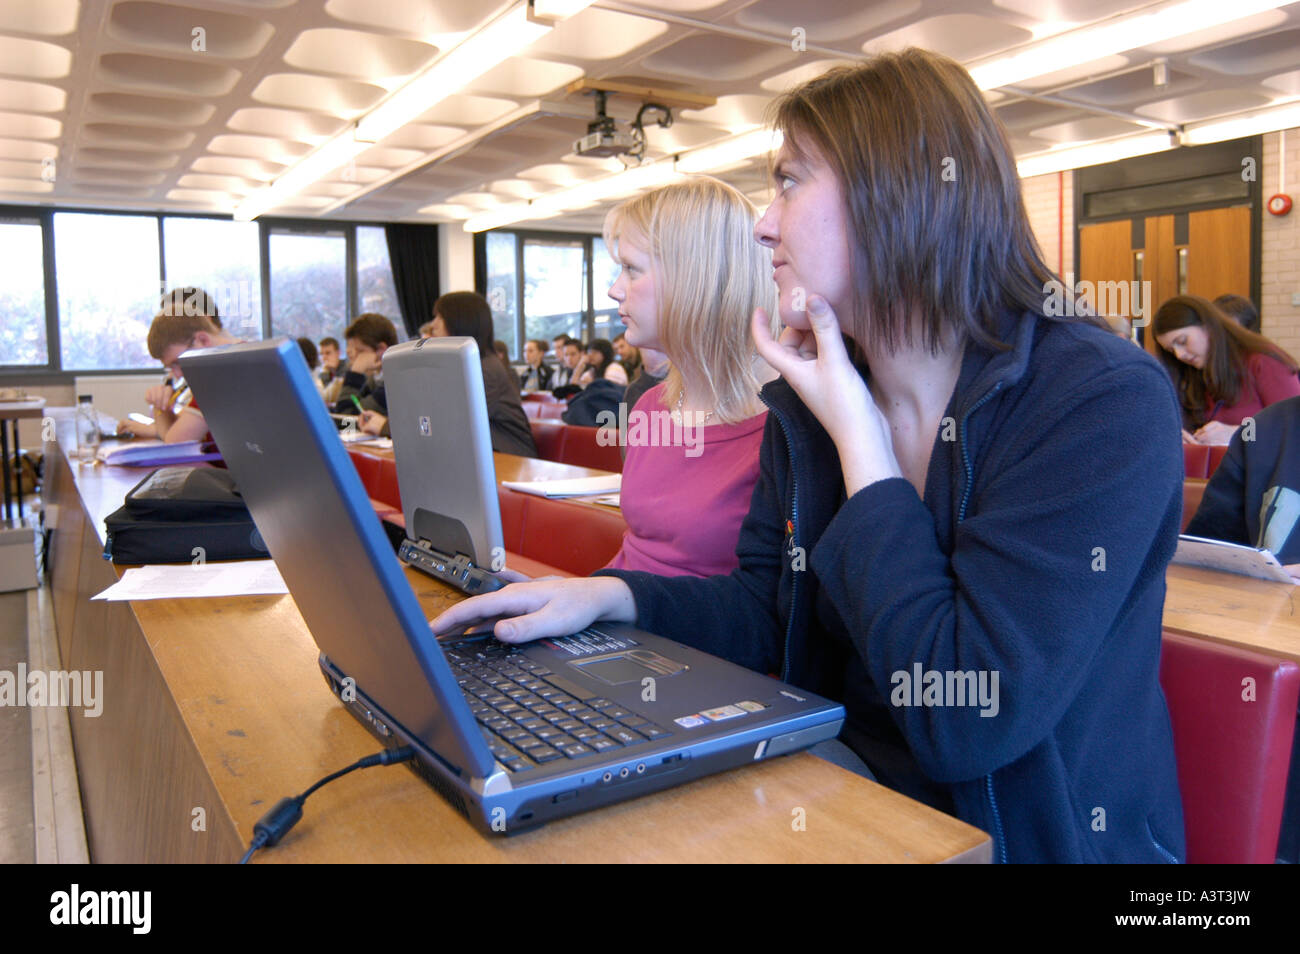 women students taking notes on laptop computers during a lecture in Law department Aberystwyth university Wales - Stock Image